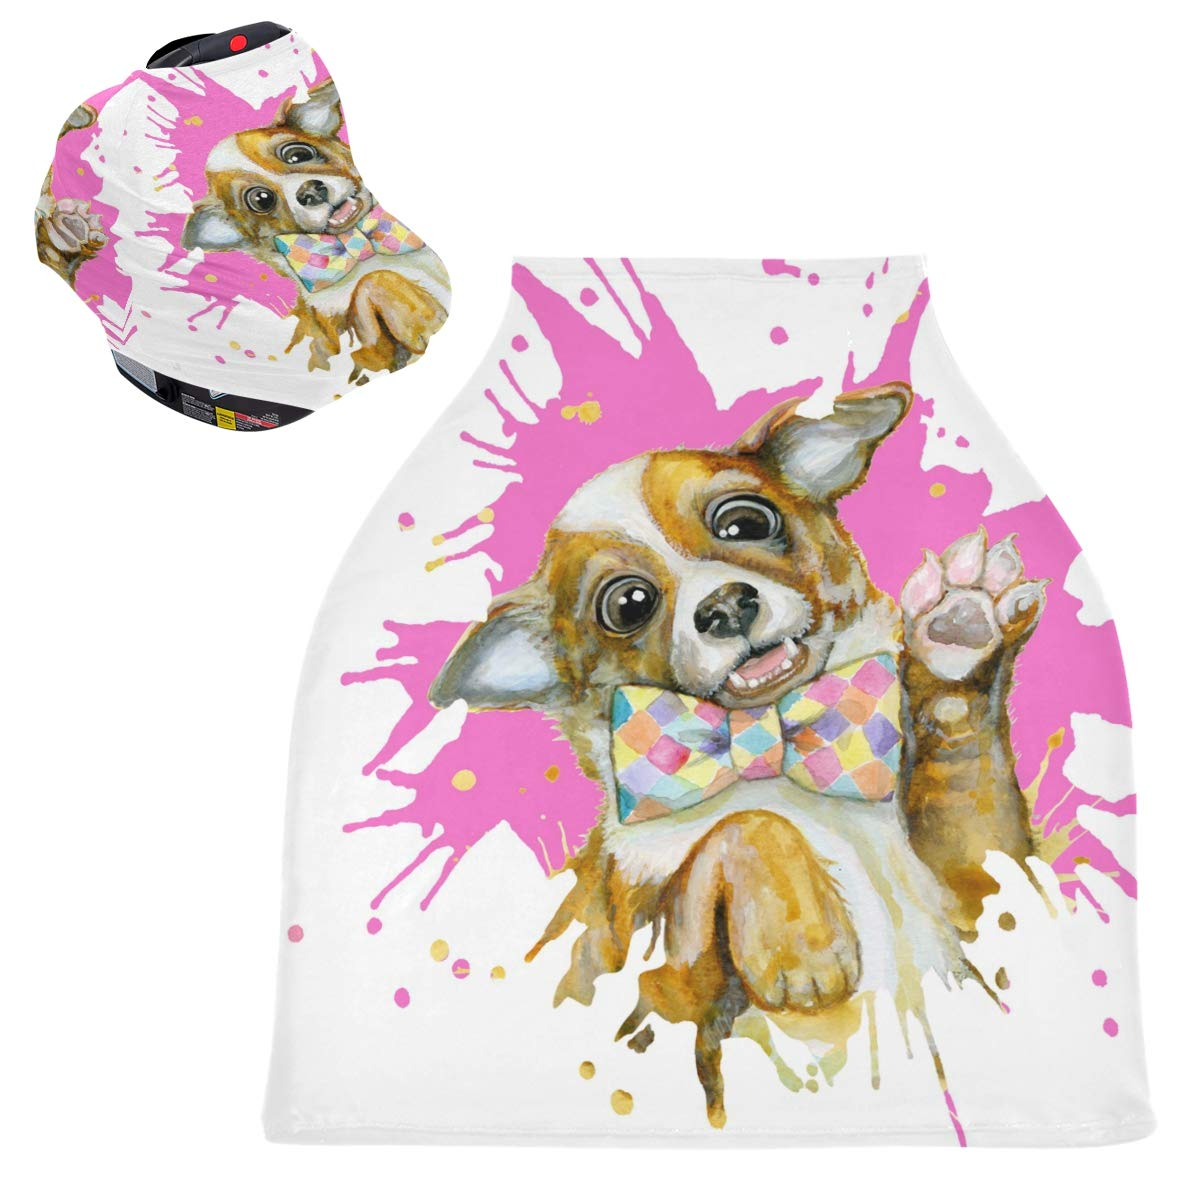 Stretchy Baby Car Seat Canopy - Funny Dog Watercolor Infant Stroller Cover Multi Use Carseat Scarf Nursing Cover for Baby Boy and Girl